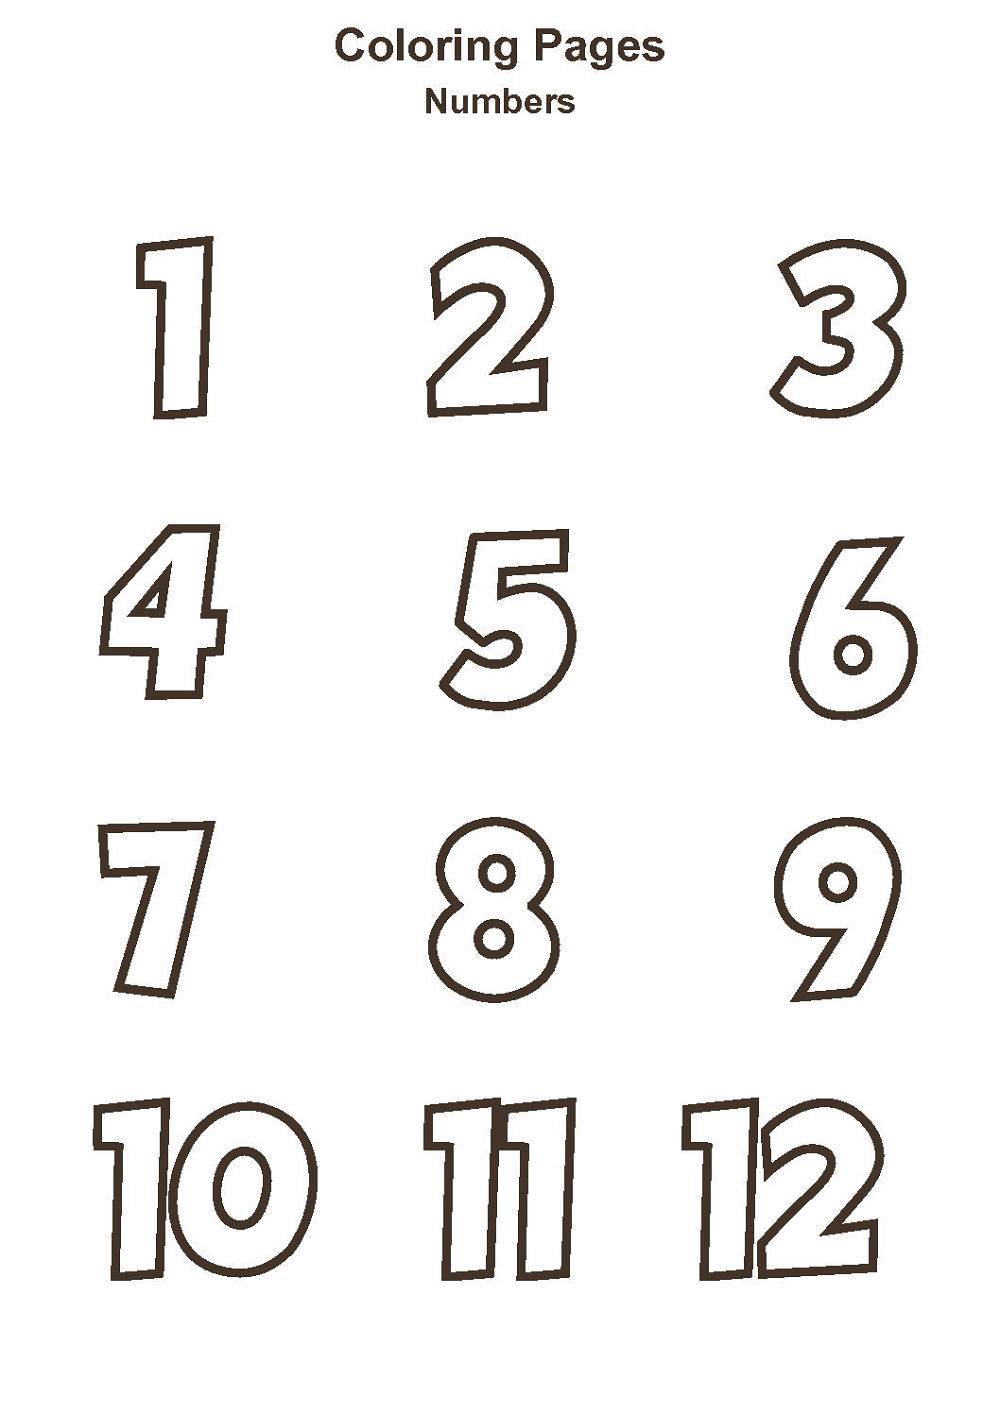 Number Coloring Pages 1 12 Coloring Pages To Print Coloring Pages Time Worksheets [ 1414 x 1000 Pixel ]